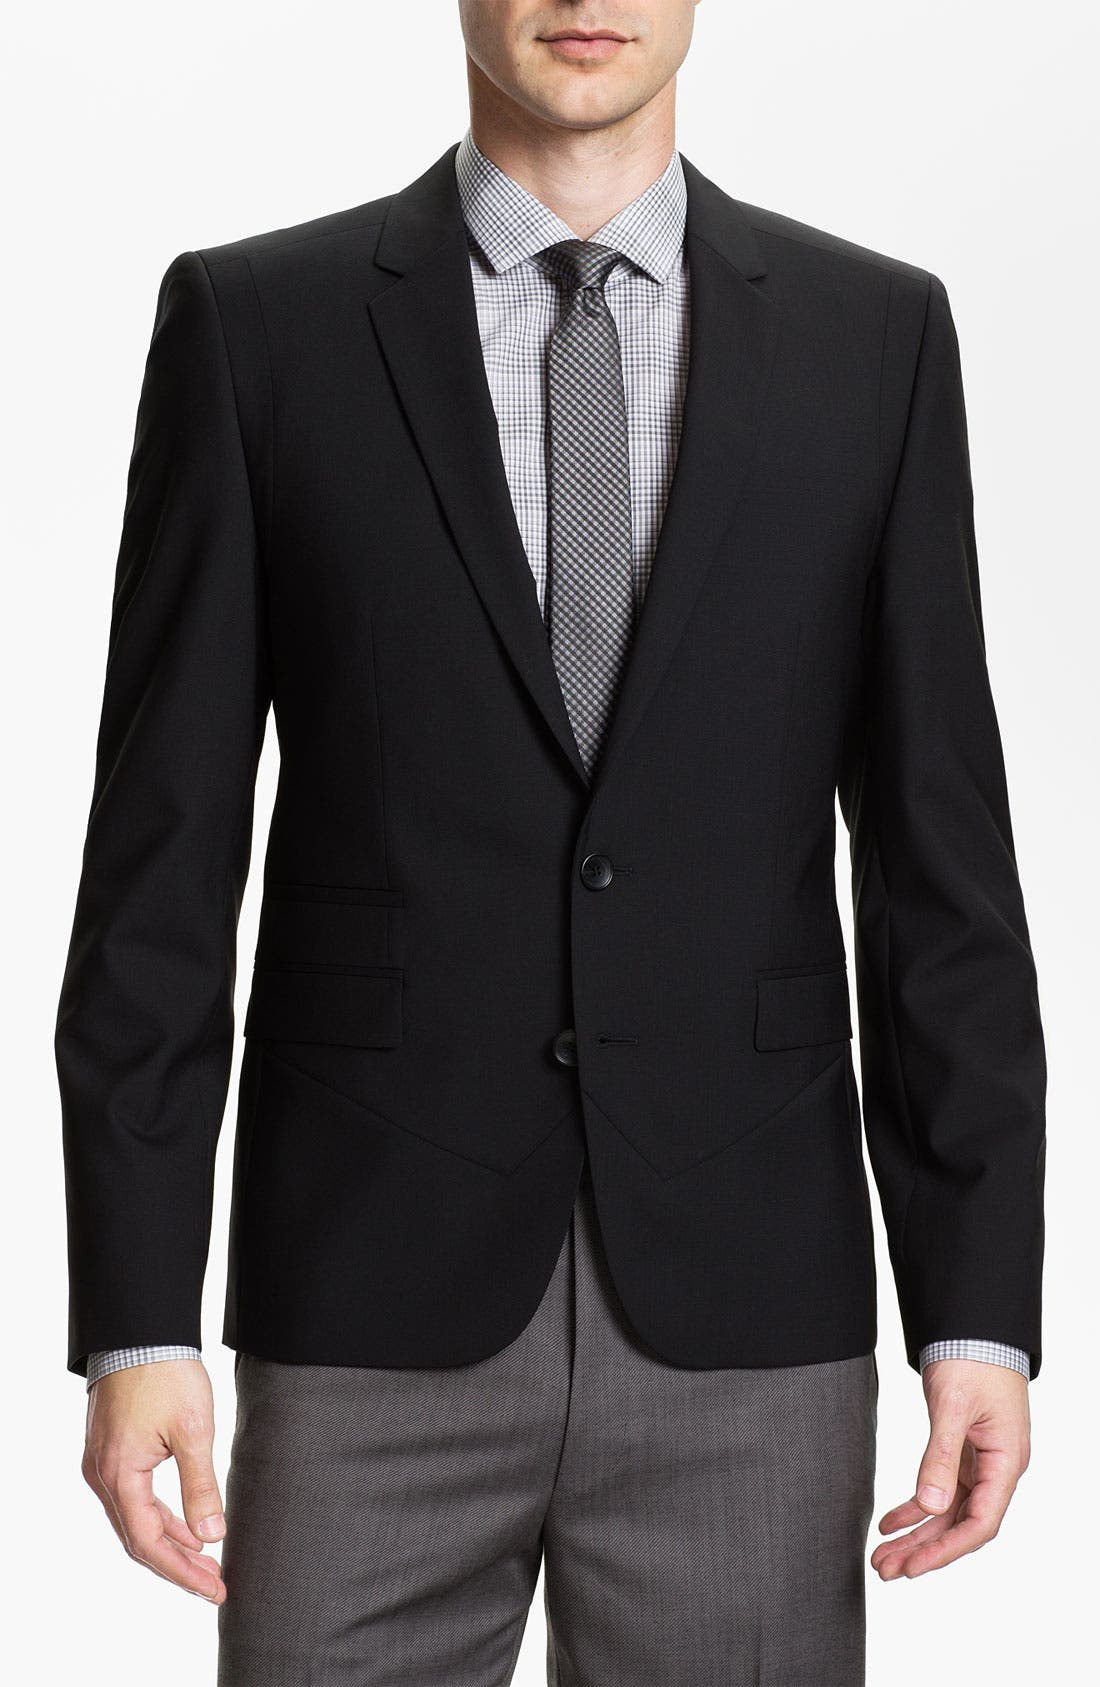 Main Image - HUGO 'Arwis' Trim Fit Stretch Wool Blazer